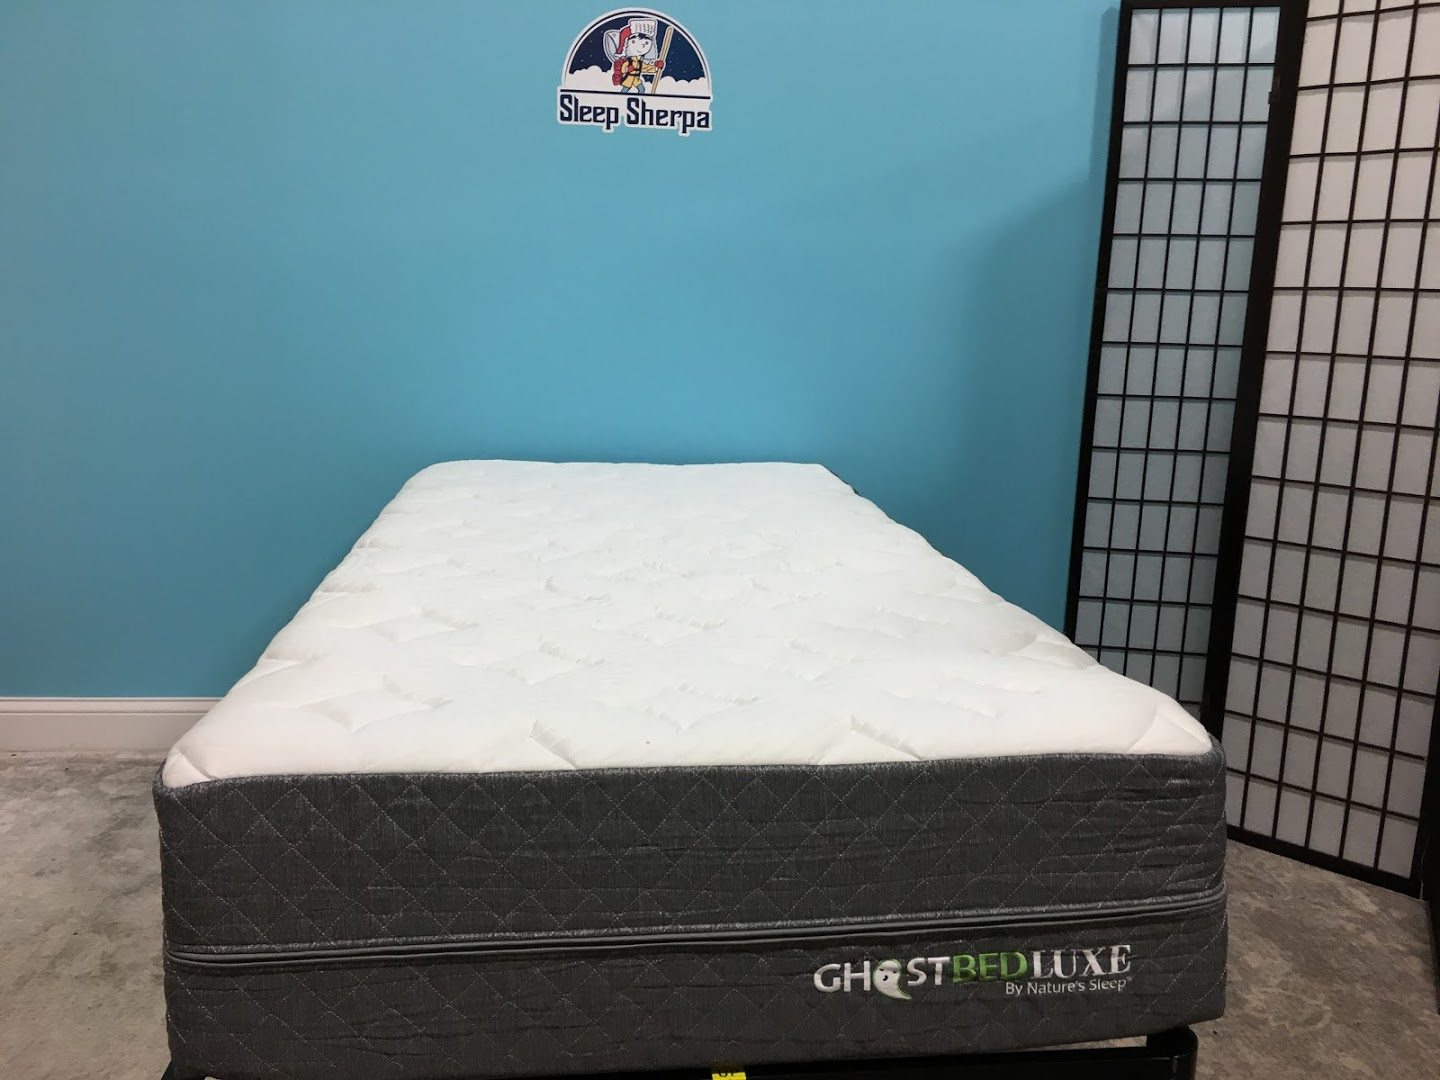 ghostbed luxe mattress review